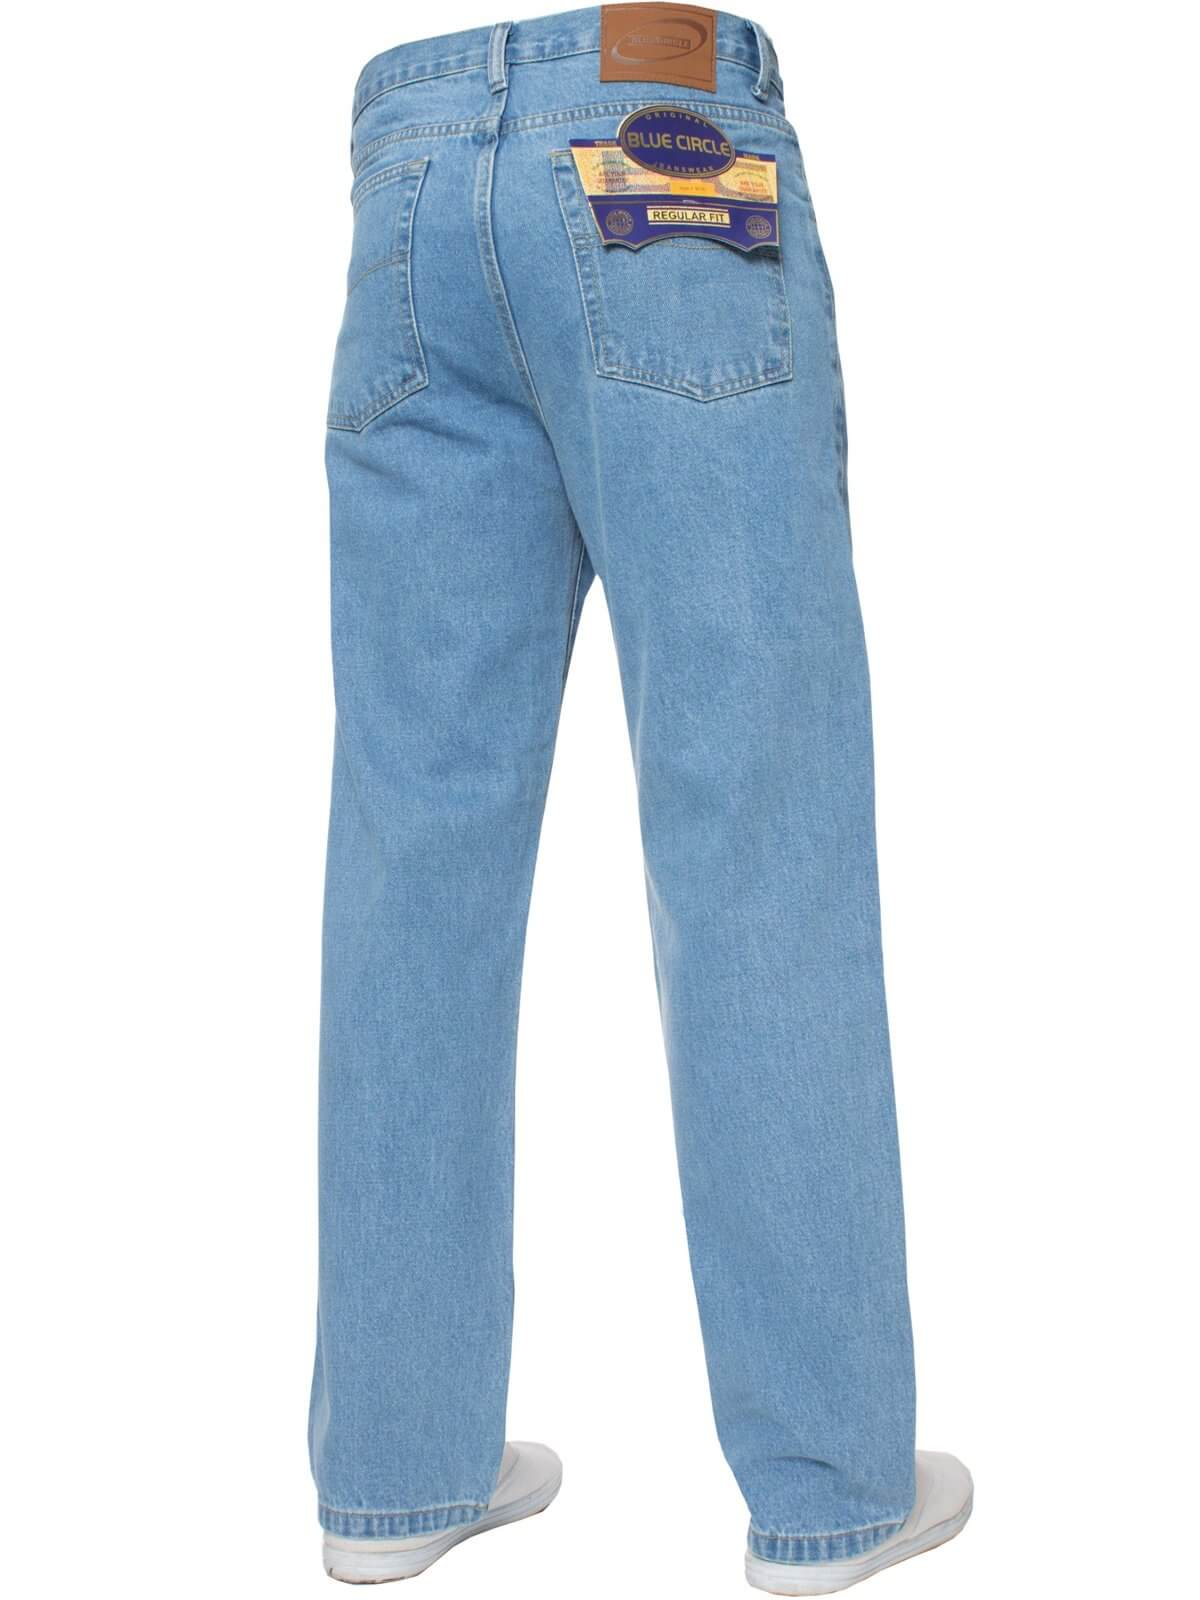 Mens Bleach Wash Classic Denim Jeans BCB2 | Blue Circle Designer Menswear